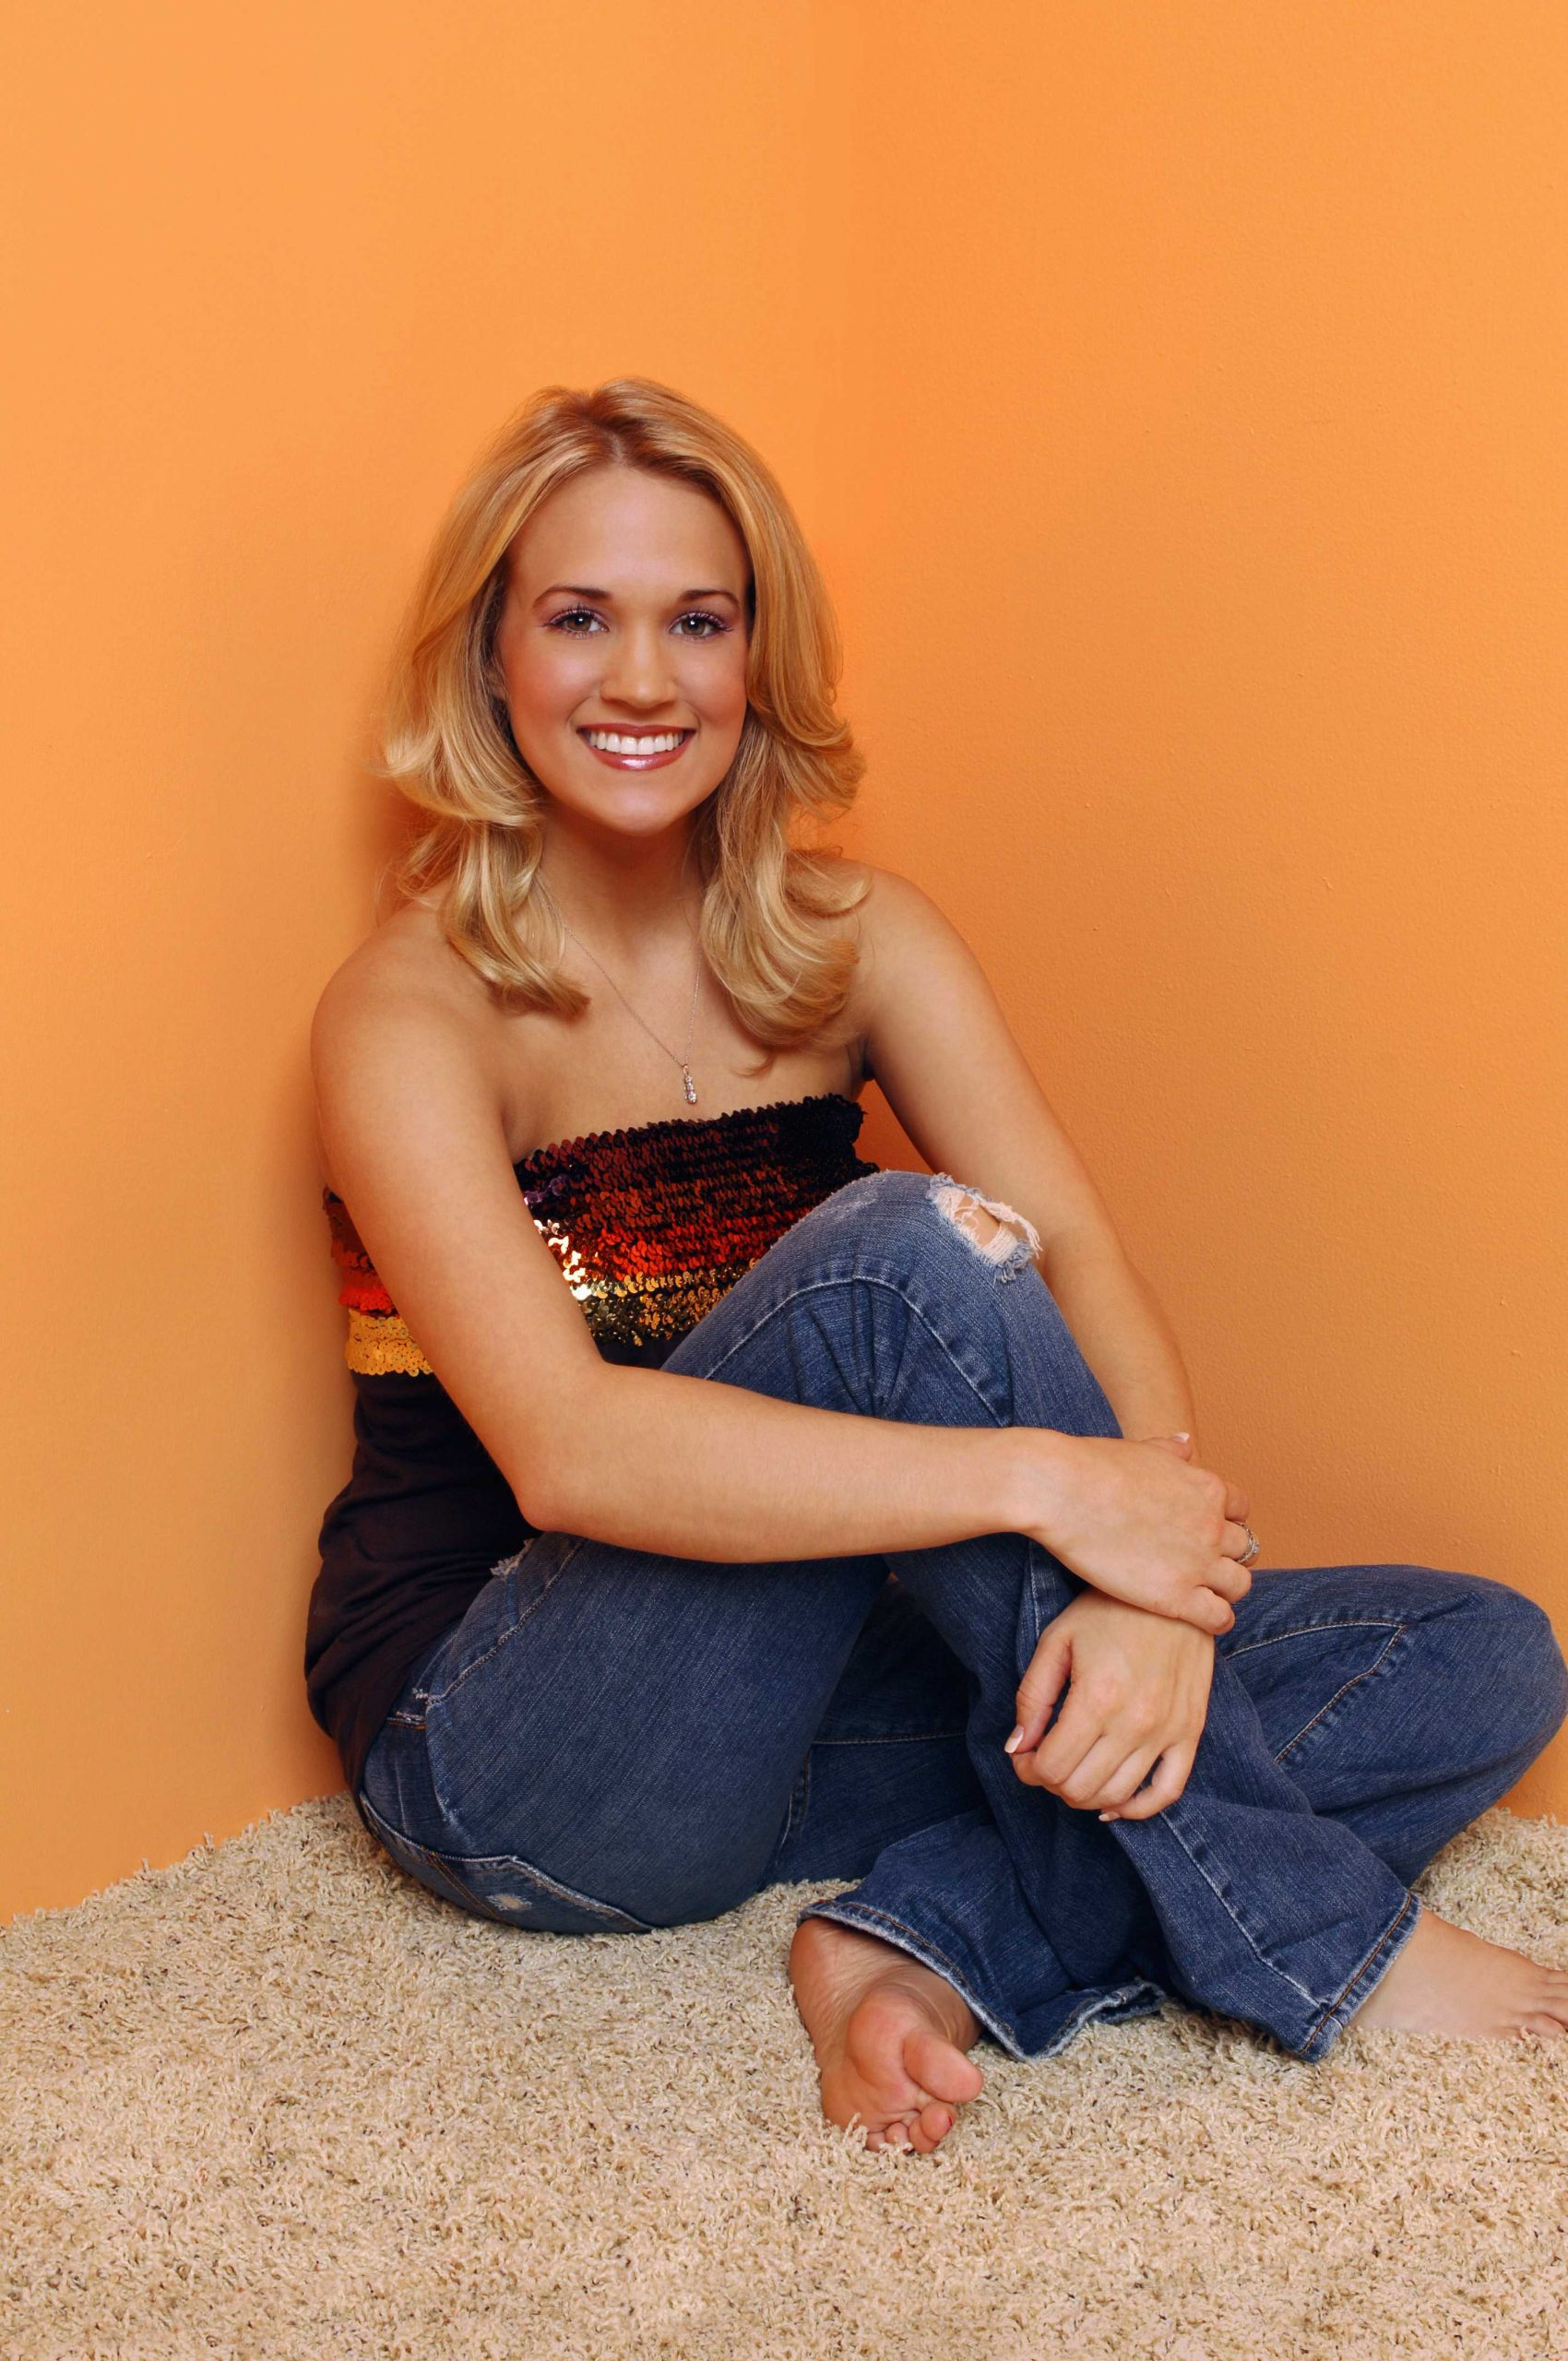 61 Sexy Carrie Underwood Pictures Captured Over The Years - GEEKS ON COFFEE